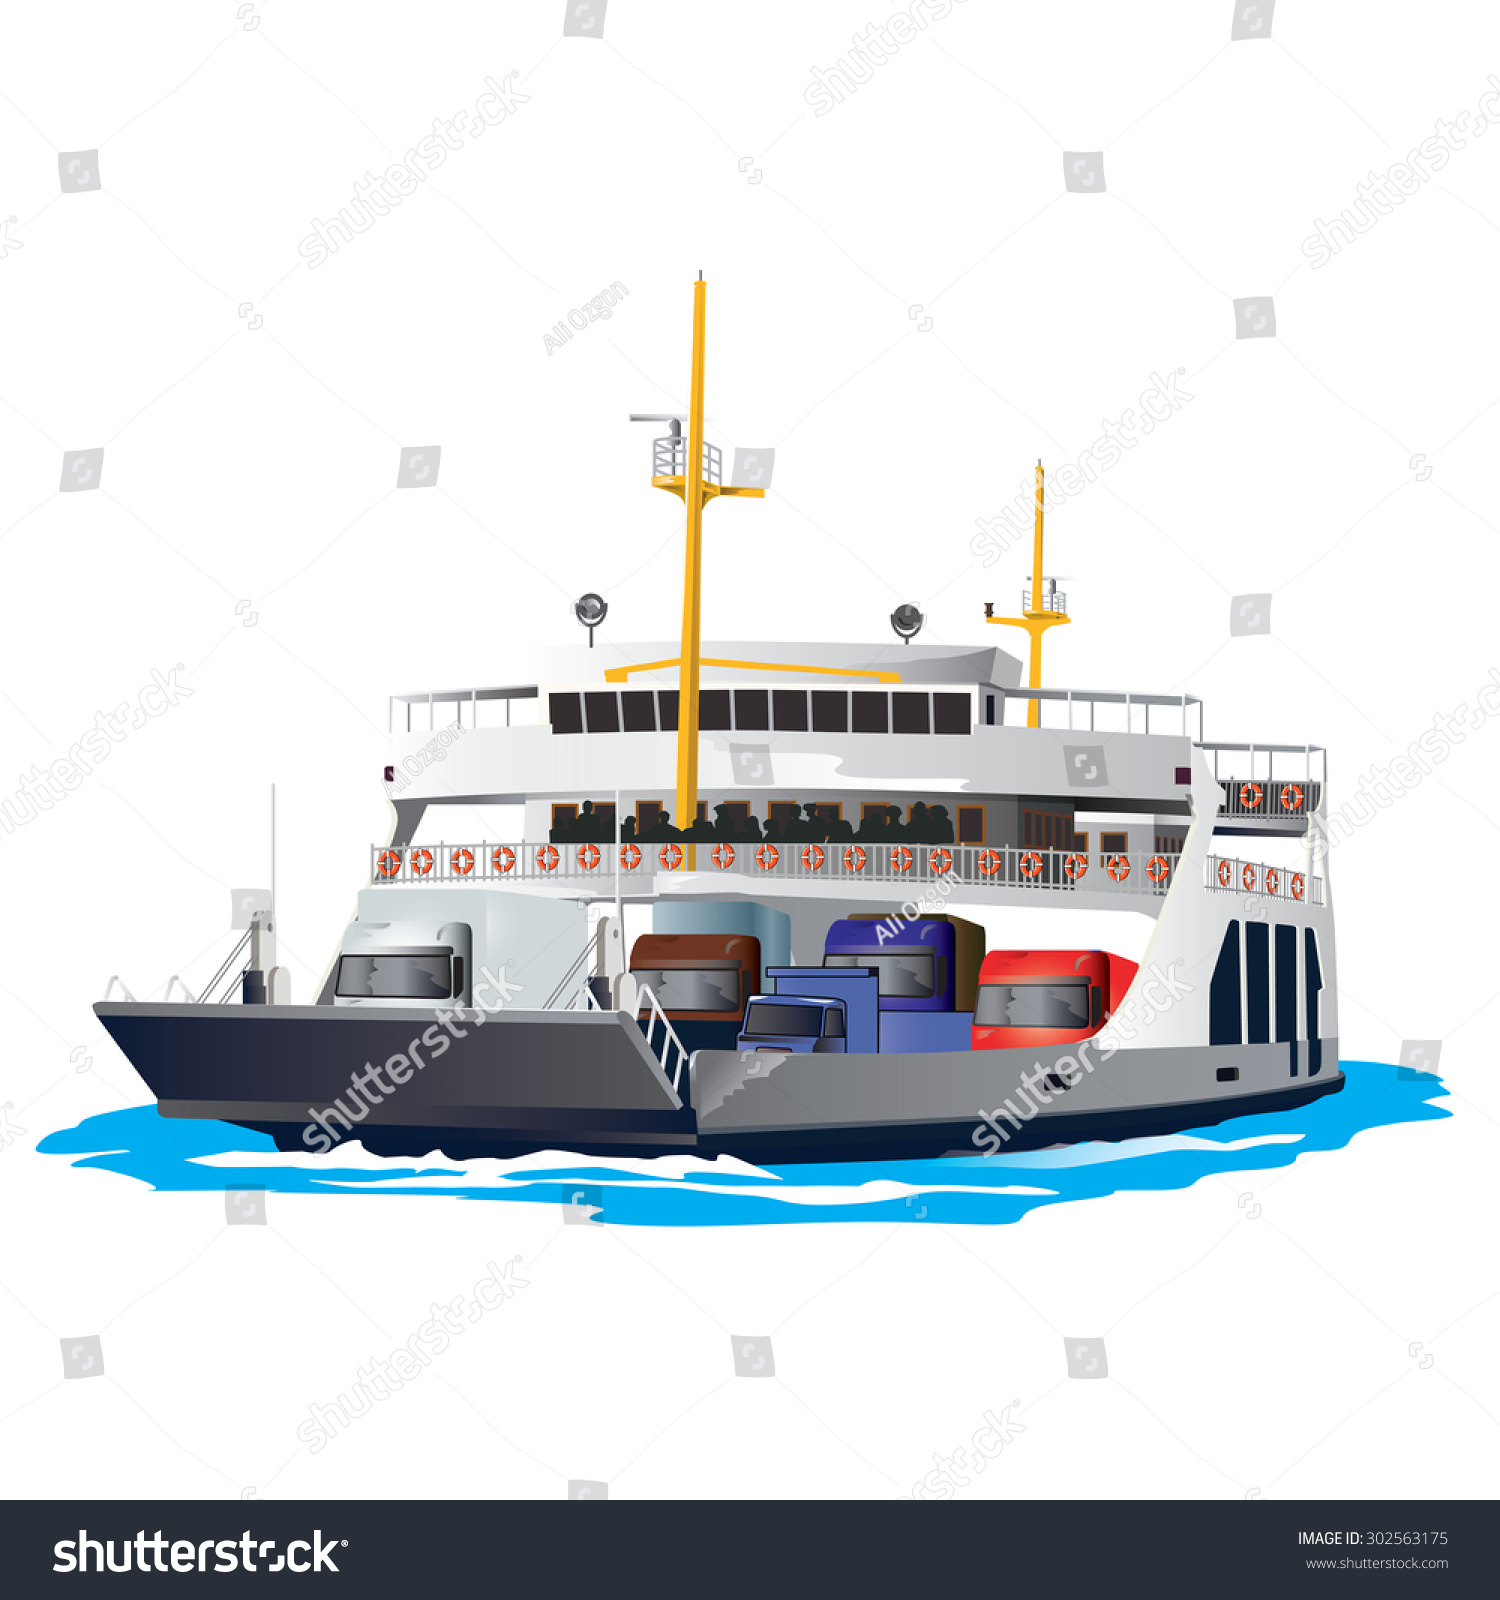 clipart ferry boat - photo #31